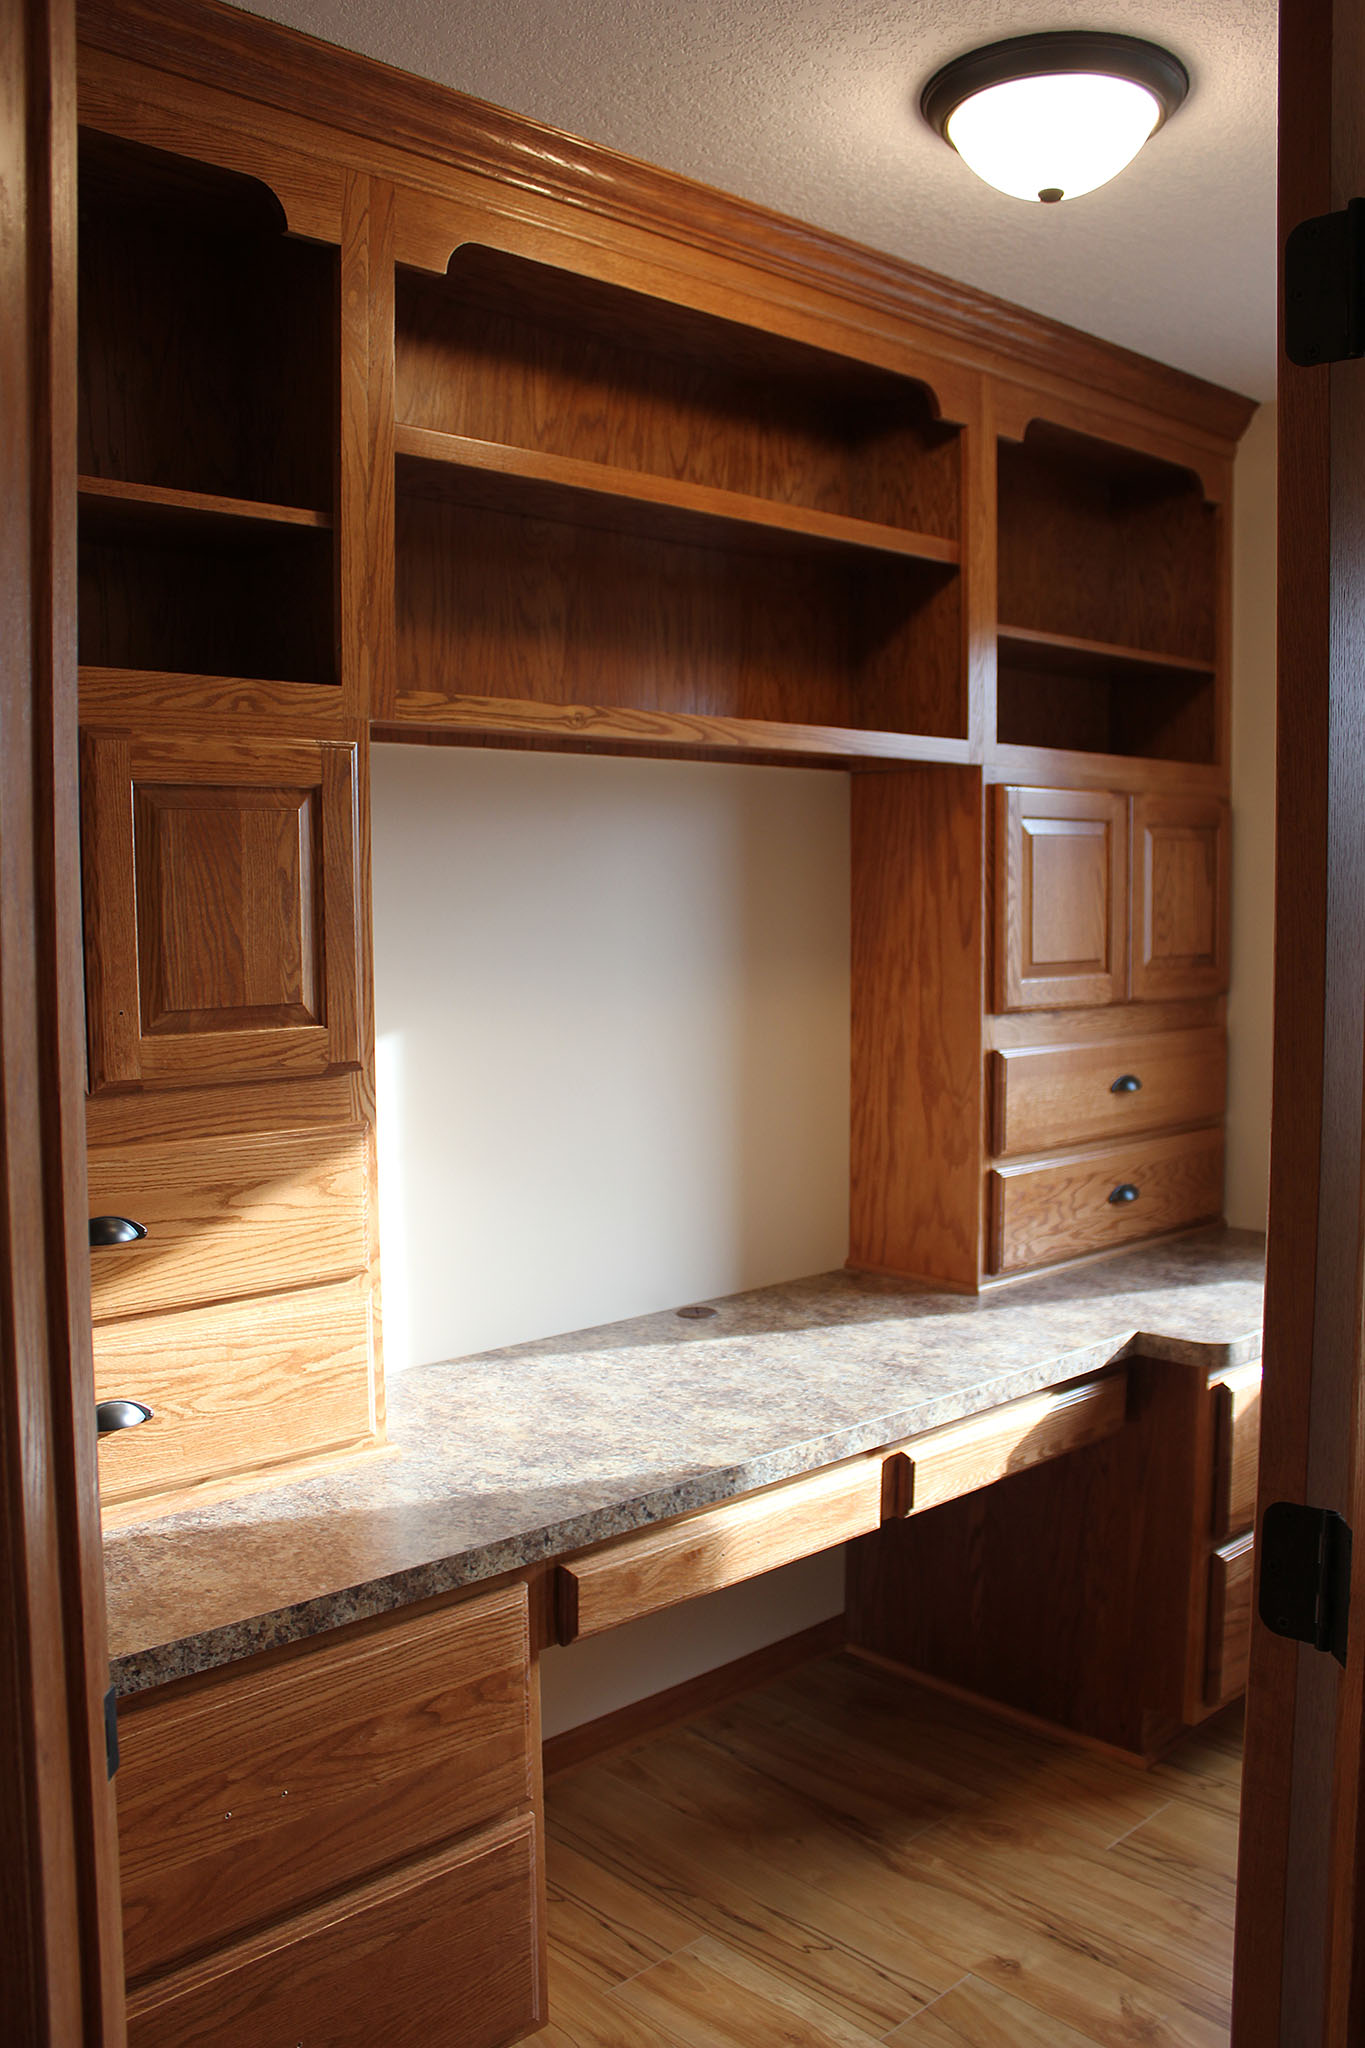 Twin home office with built-in cabinets and shelving